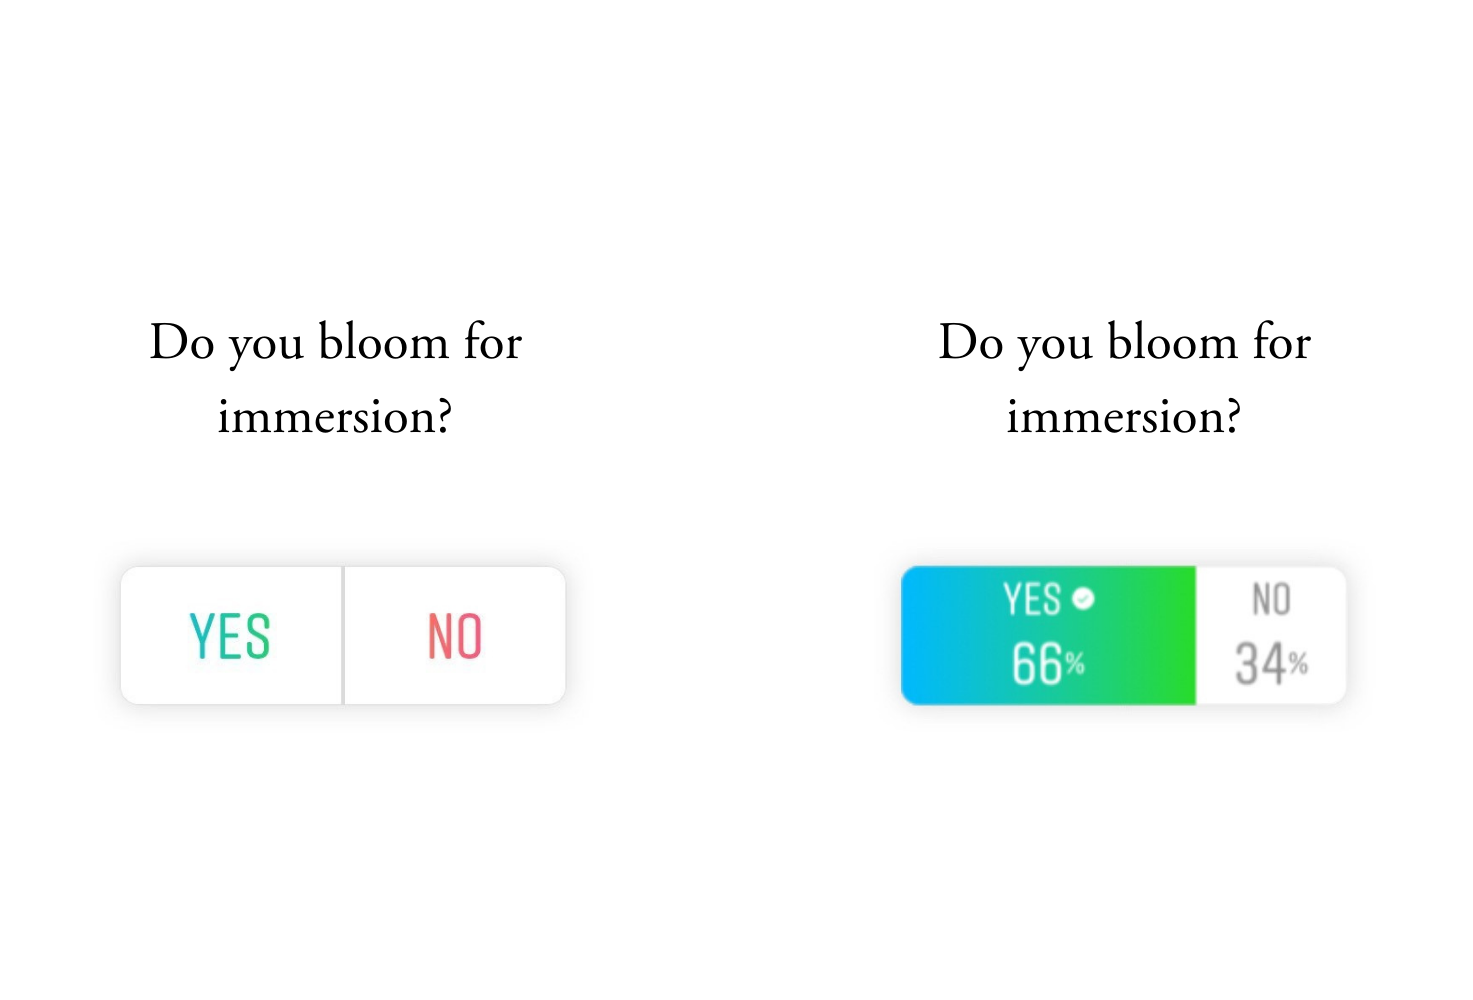 Bloom for immersion poll